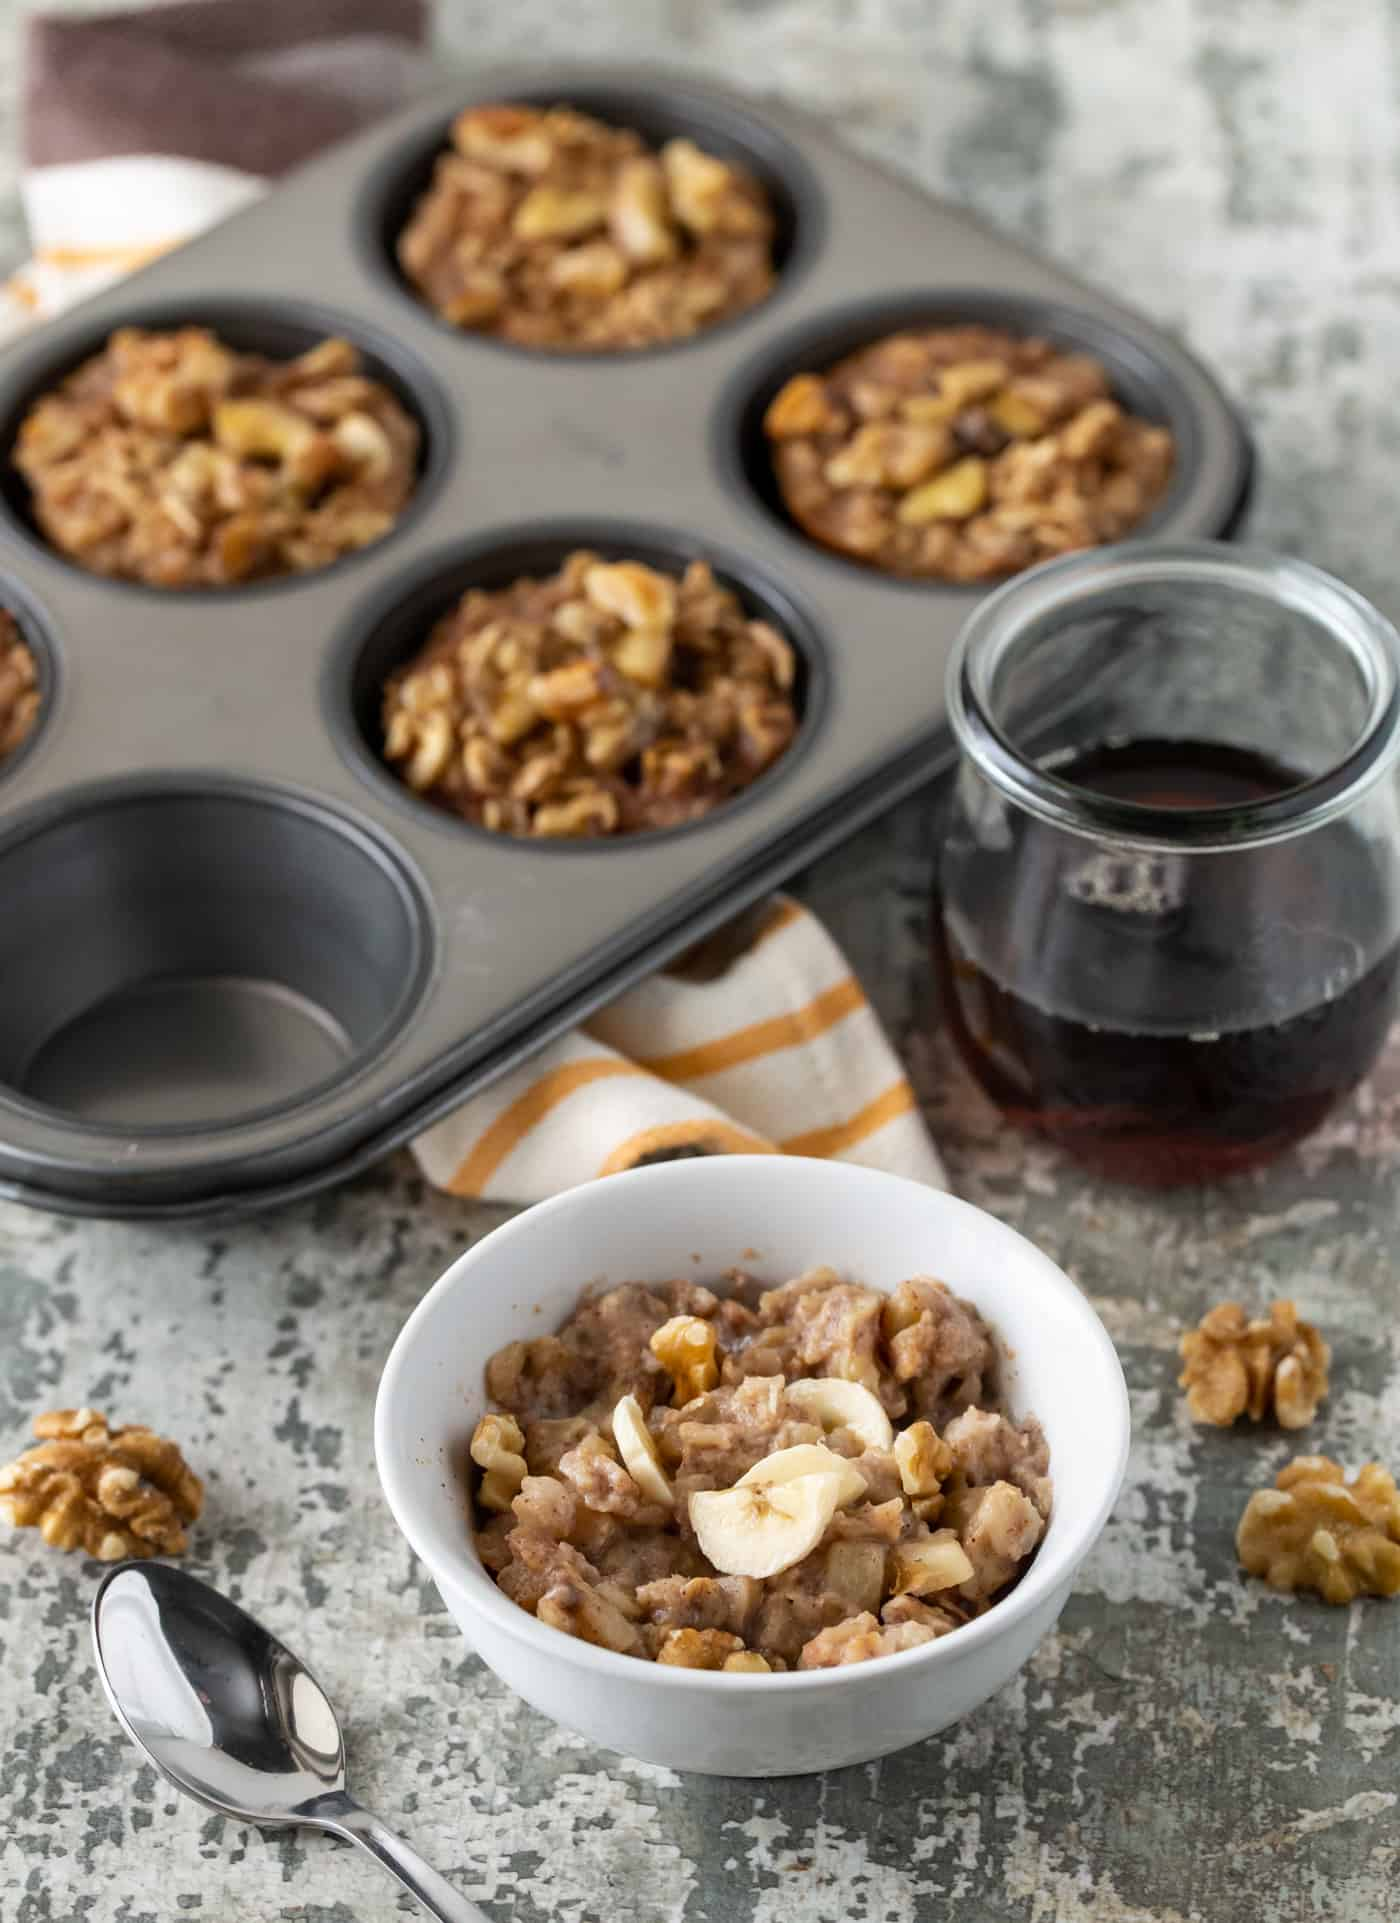 A white bowl filled with a Banana Nut Baked Oatmeal Cup. A muffin pan filled with Banana Nut Baked Oatmeal Cups is in the background along with a jar of maple syrup and walnuts.